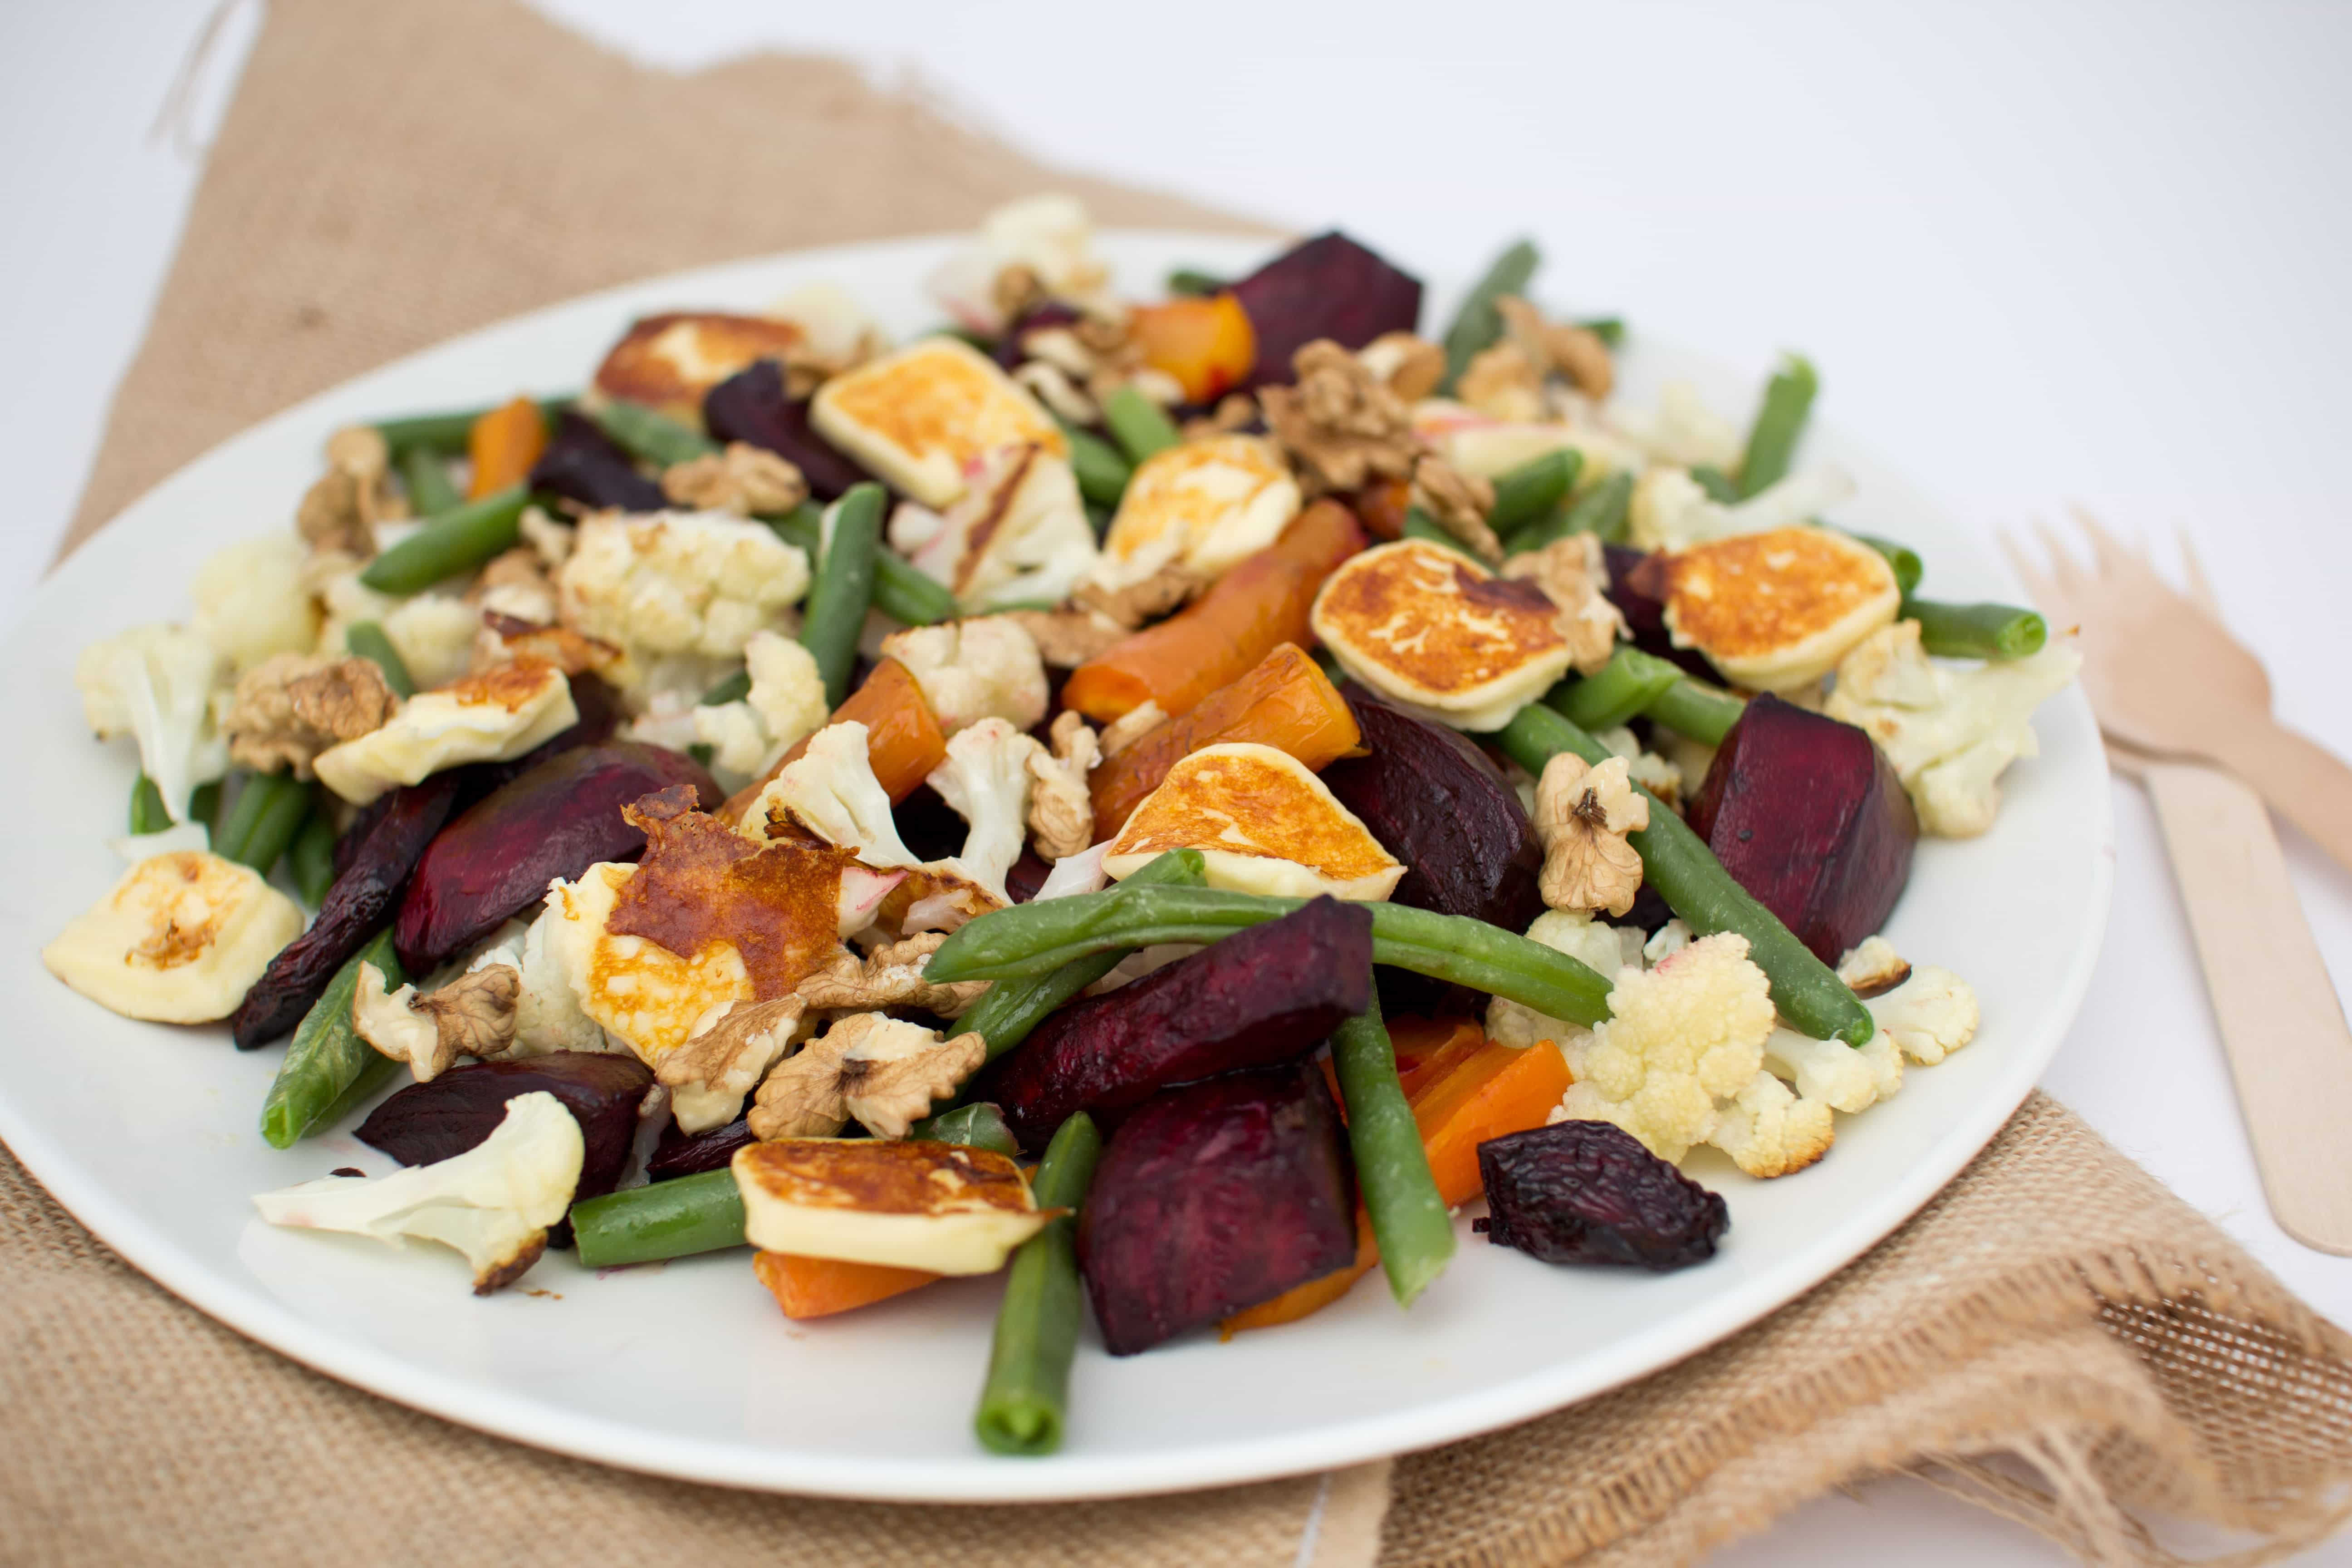 Roasted beetroot, carrot, cauliflower salad with halloumi